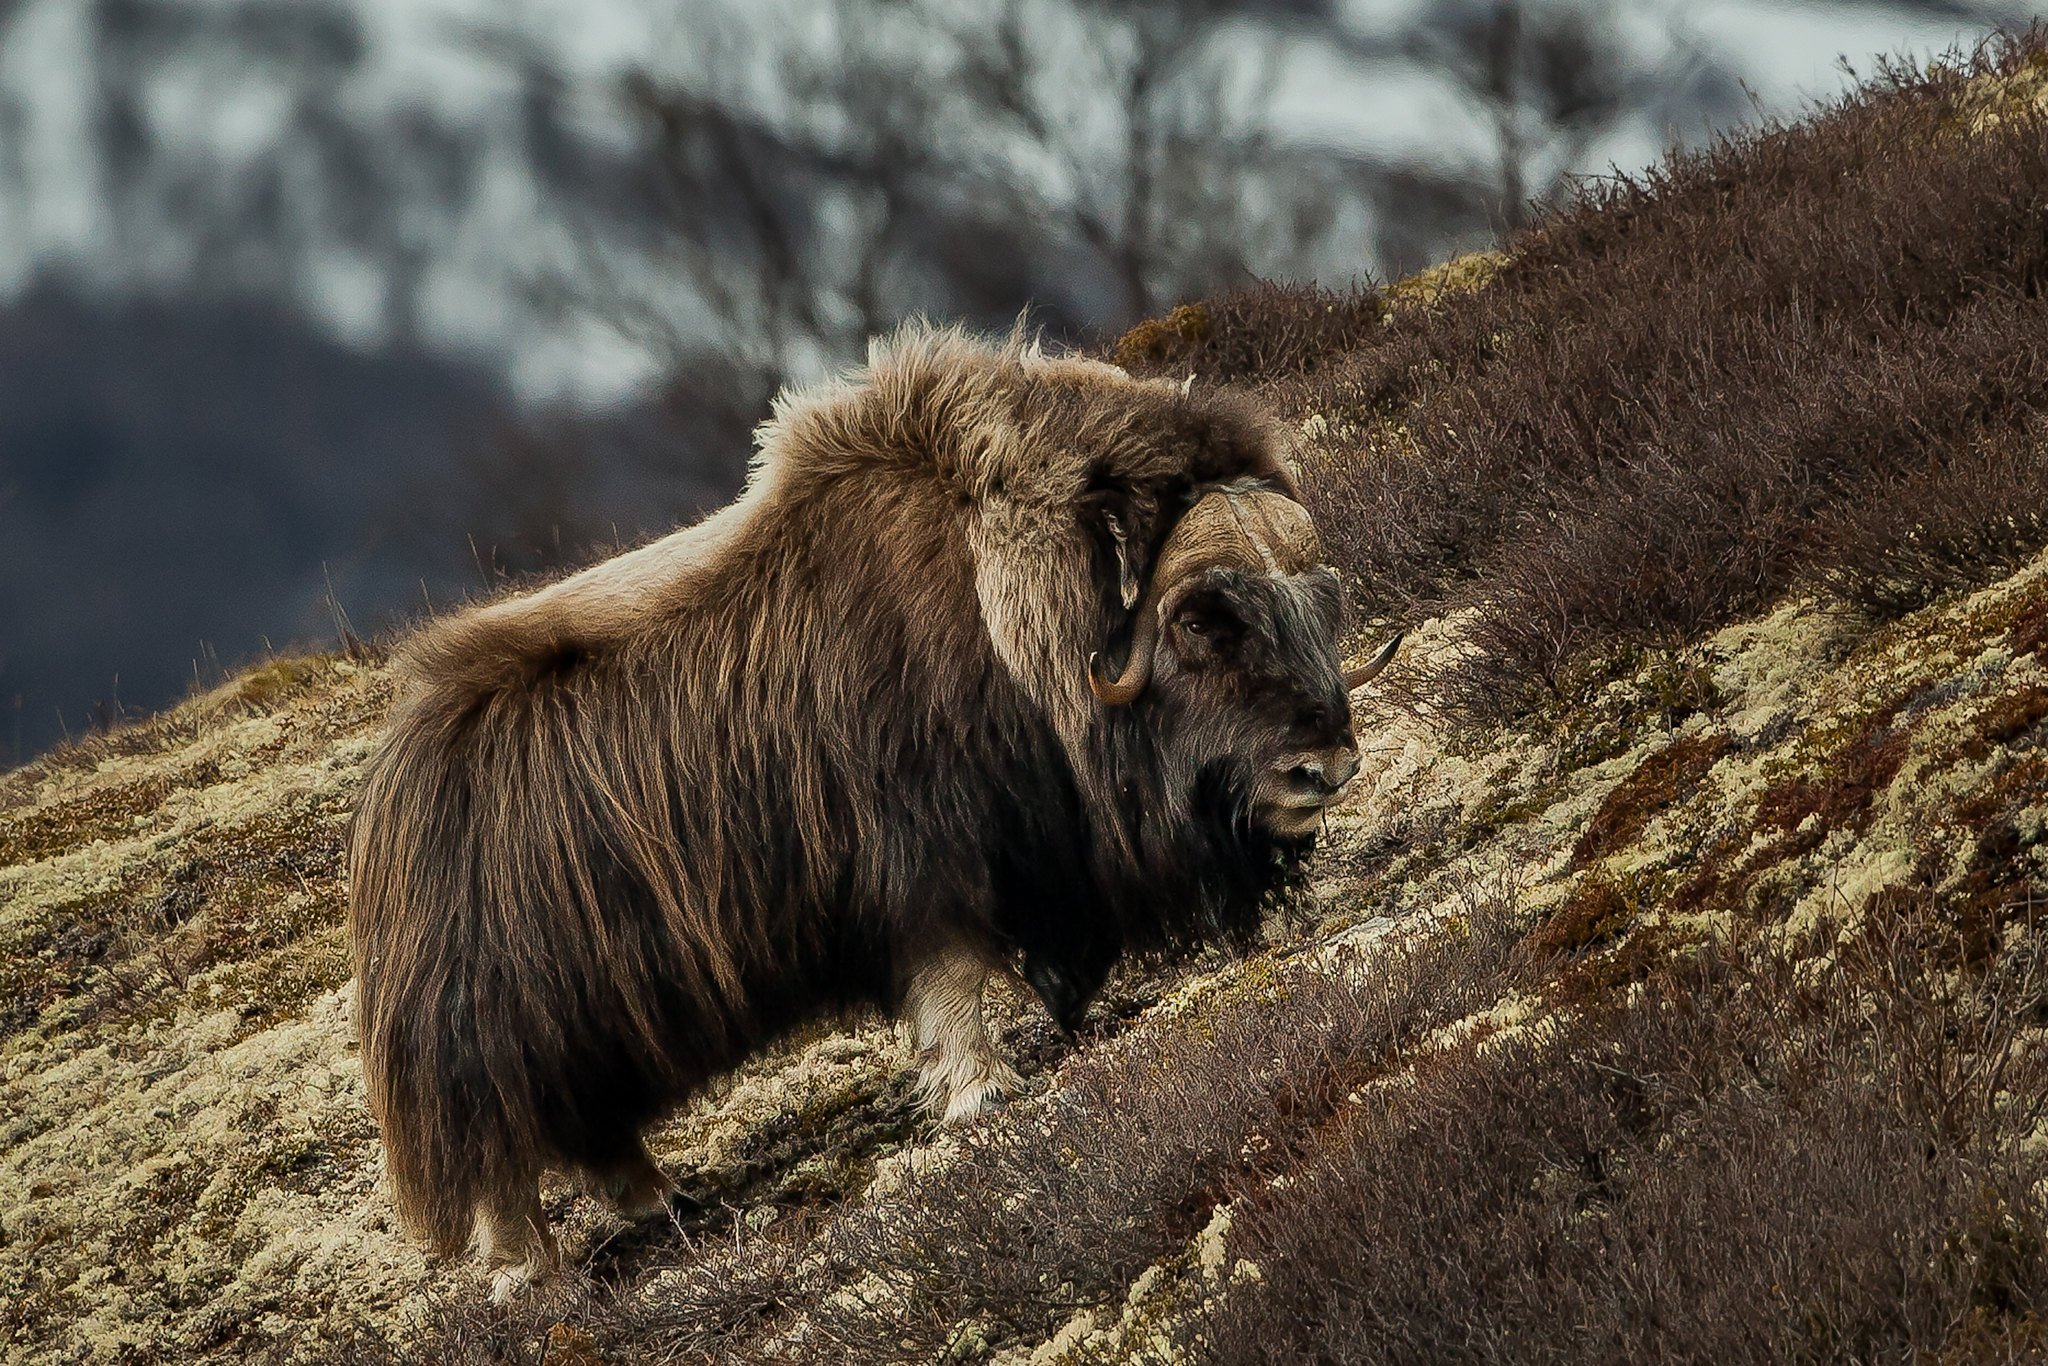 A muskox in the Dovre mountains.   Photo: Per Harald Olsen - NTNU, Faculty of Natural Sciences cc by.